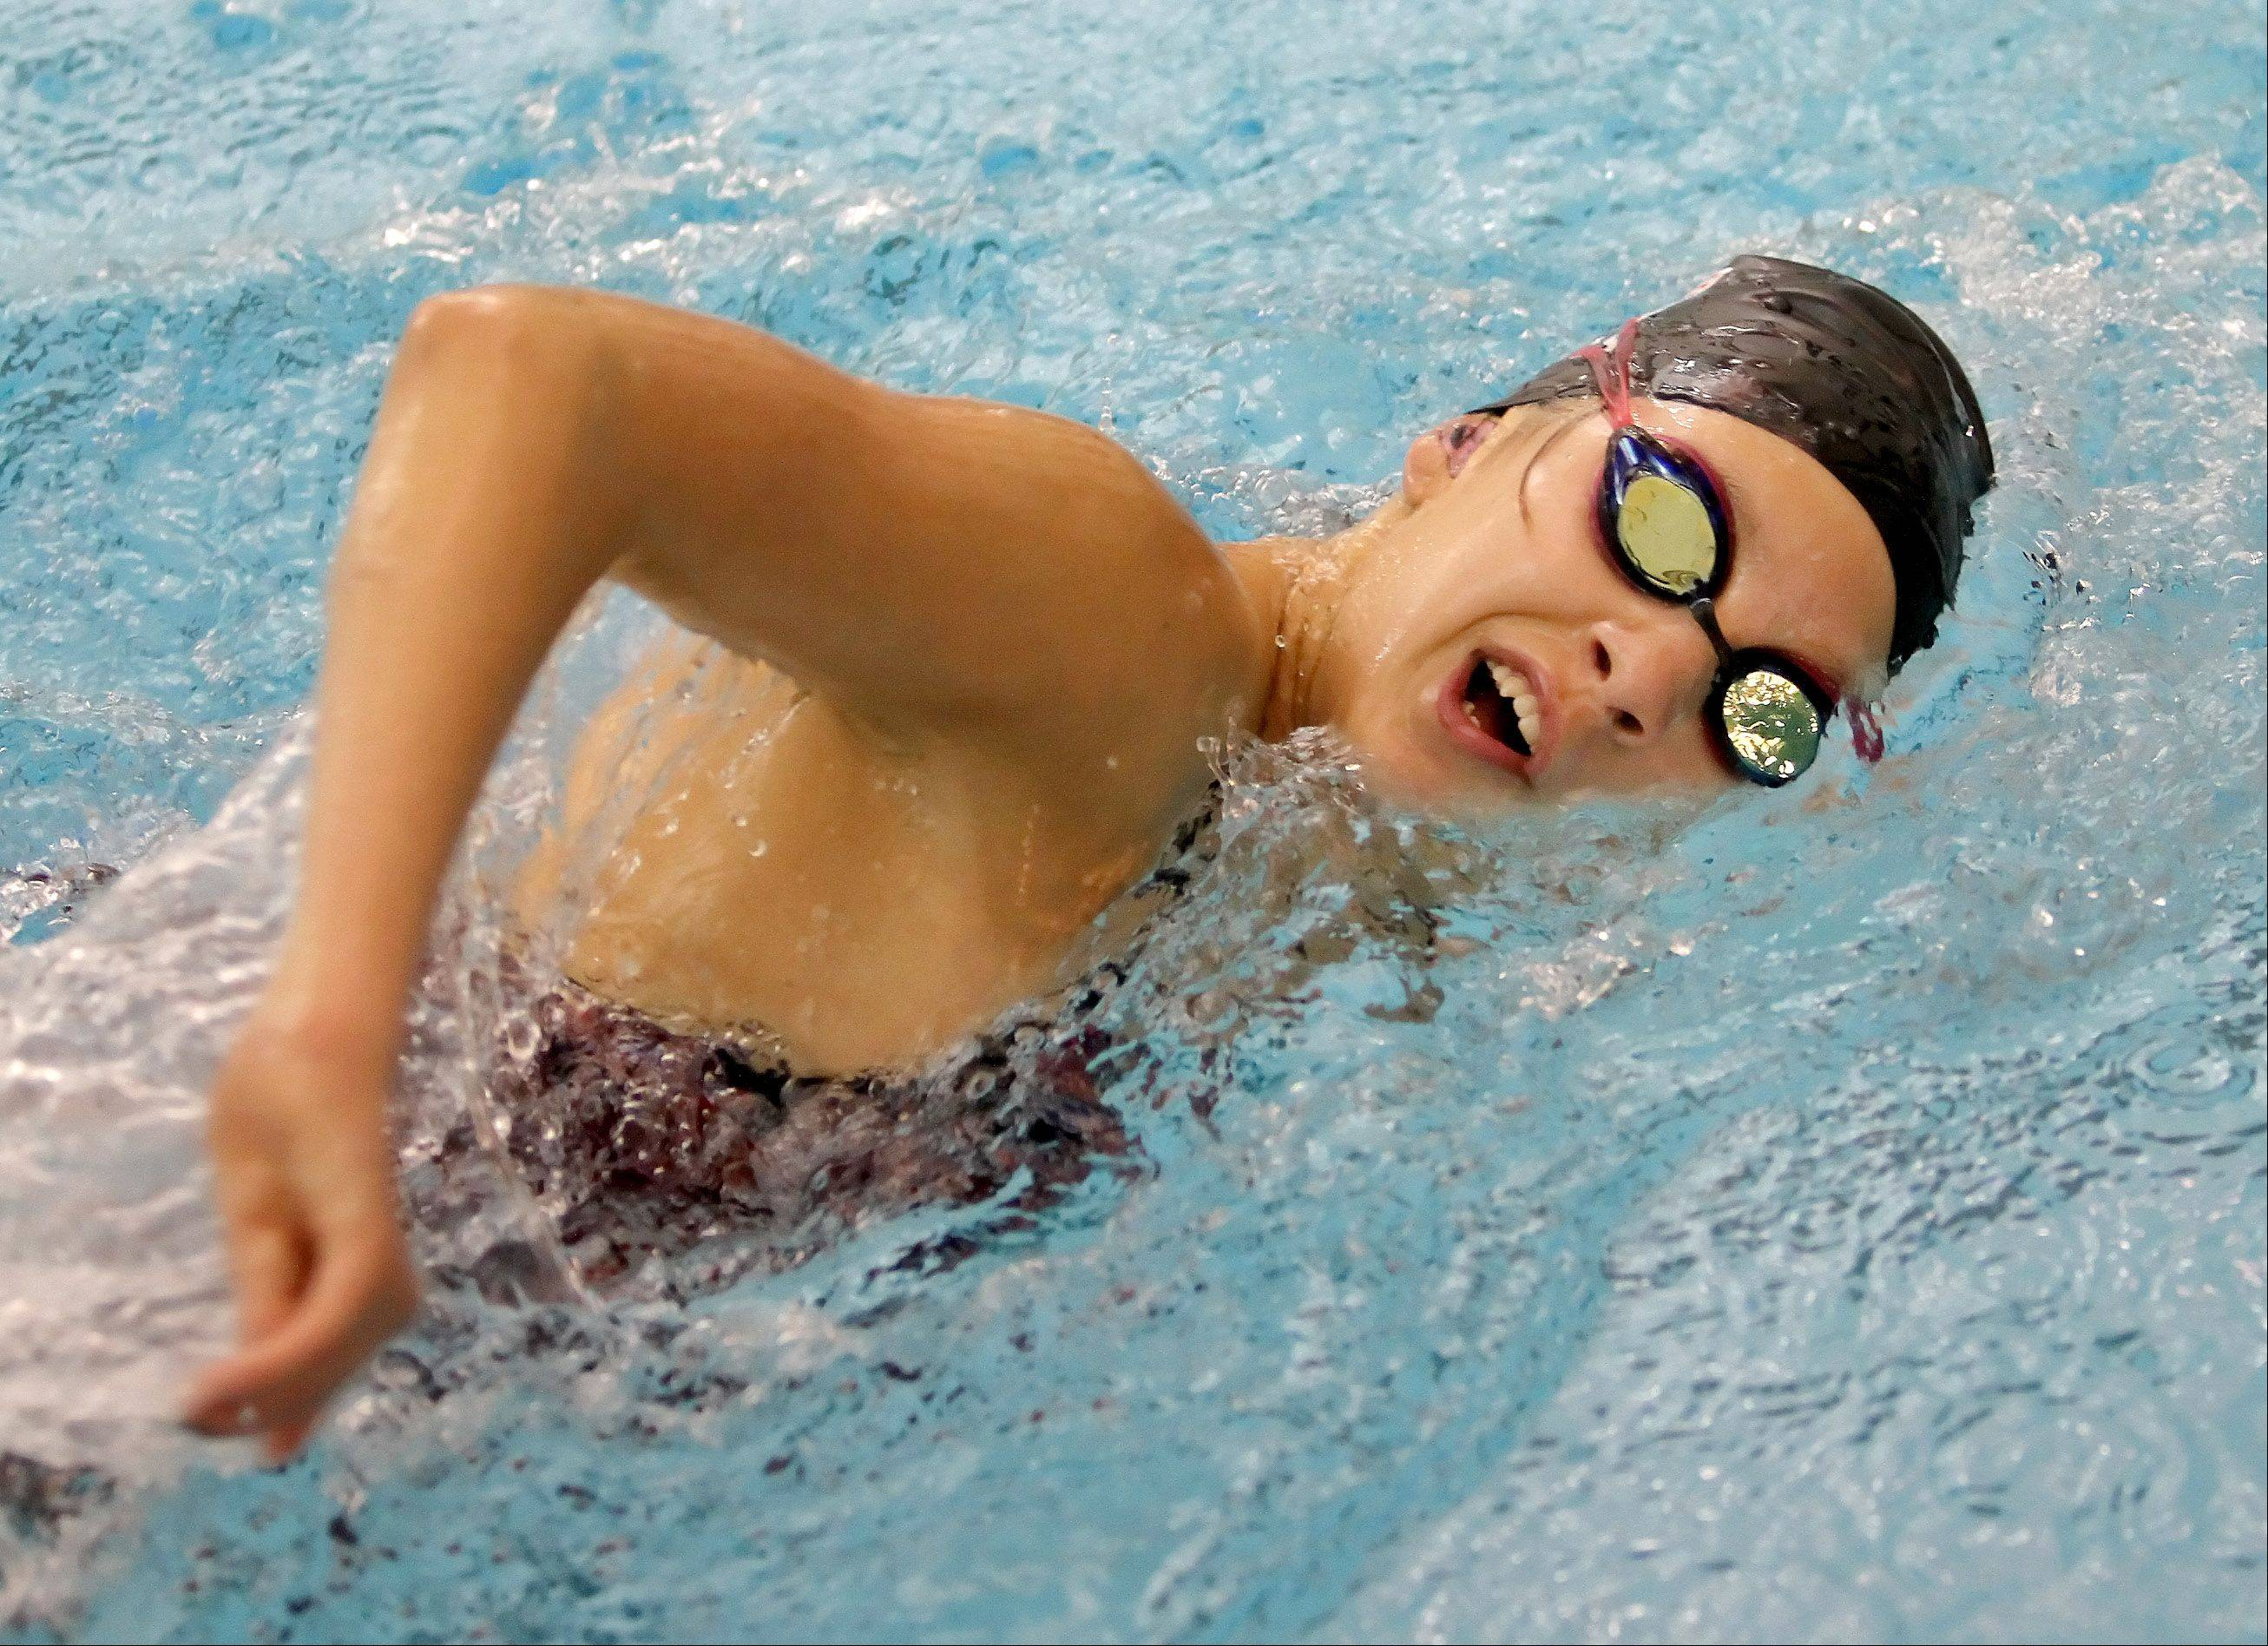 Naperville teen Alyssa Gialamas will represent Team USA swimming at the 2012 Paralympic Games in London, beginning Aug. 29.